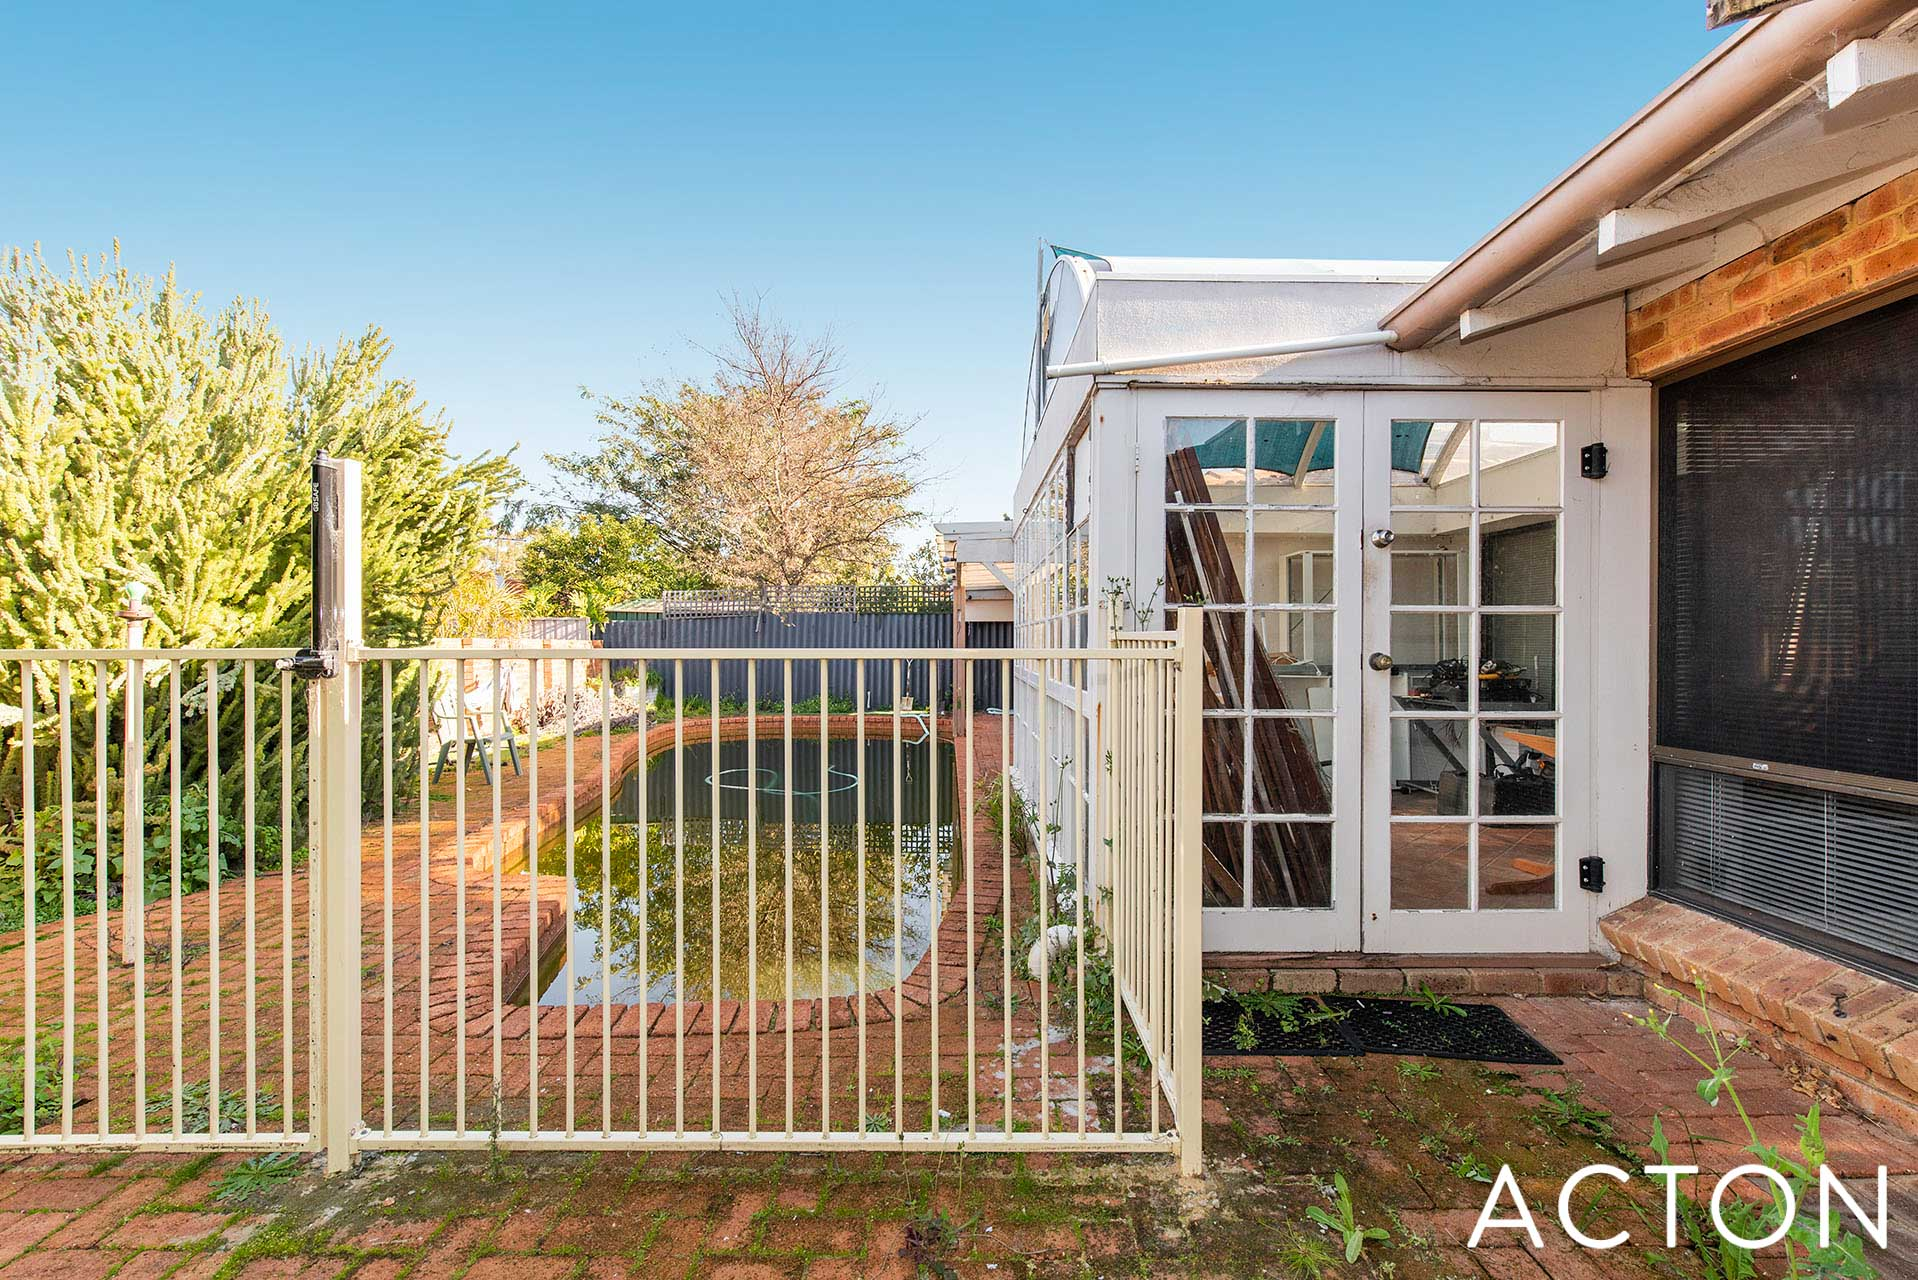 26 Mantua Crescent Churchlands - House For Sale - 21191476 - ACTON Dalkeith